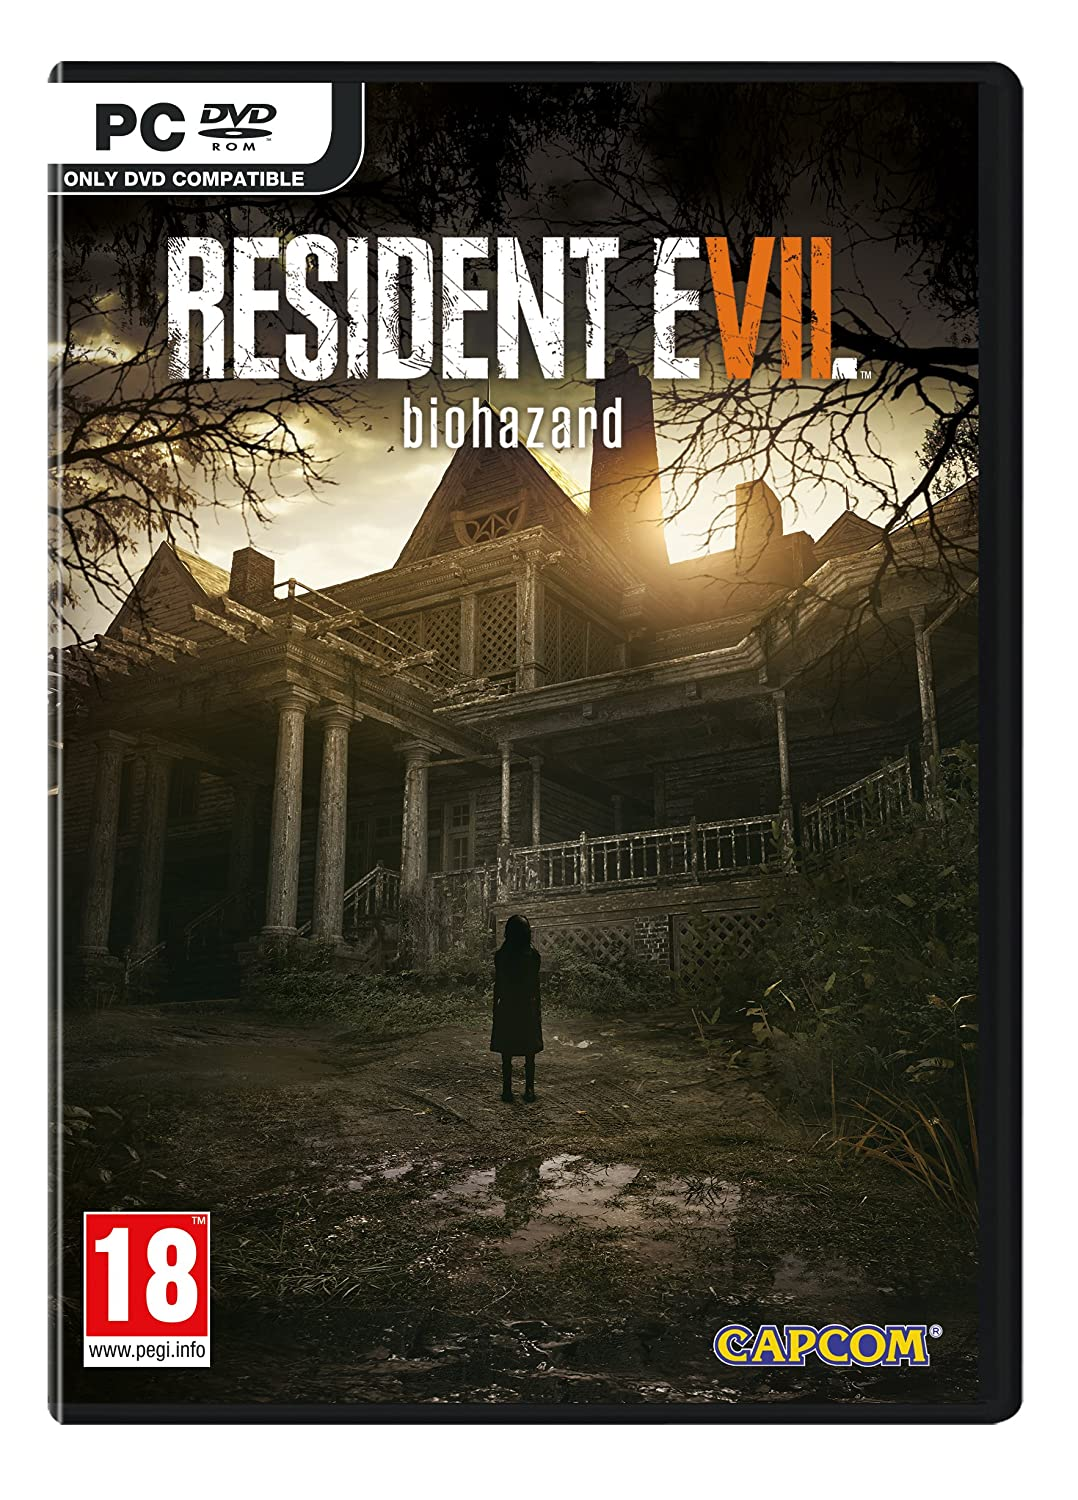 Buy Pc Resident Evil 7 Biohazard Pc Online At Low Prices In India Capcom Video Games Amazon In